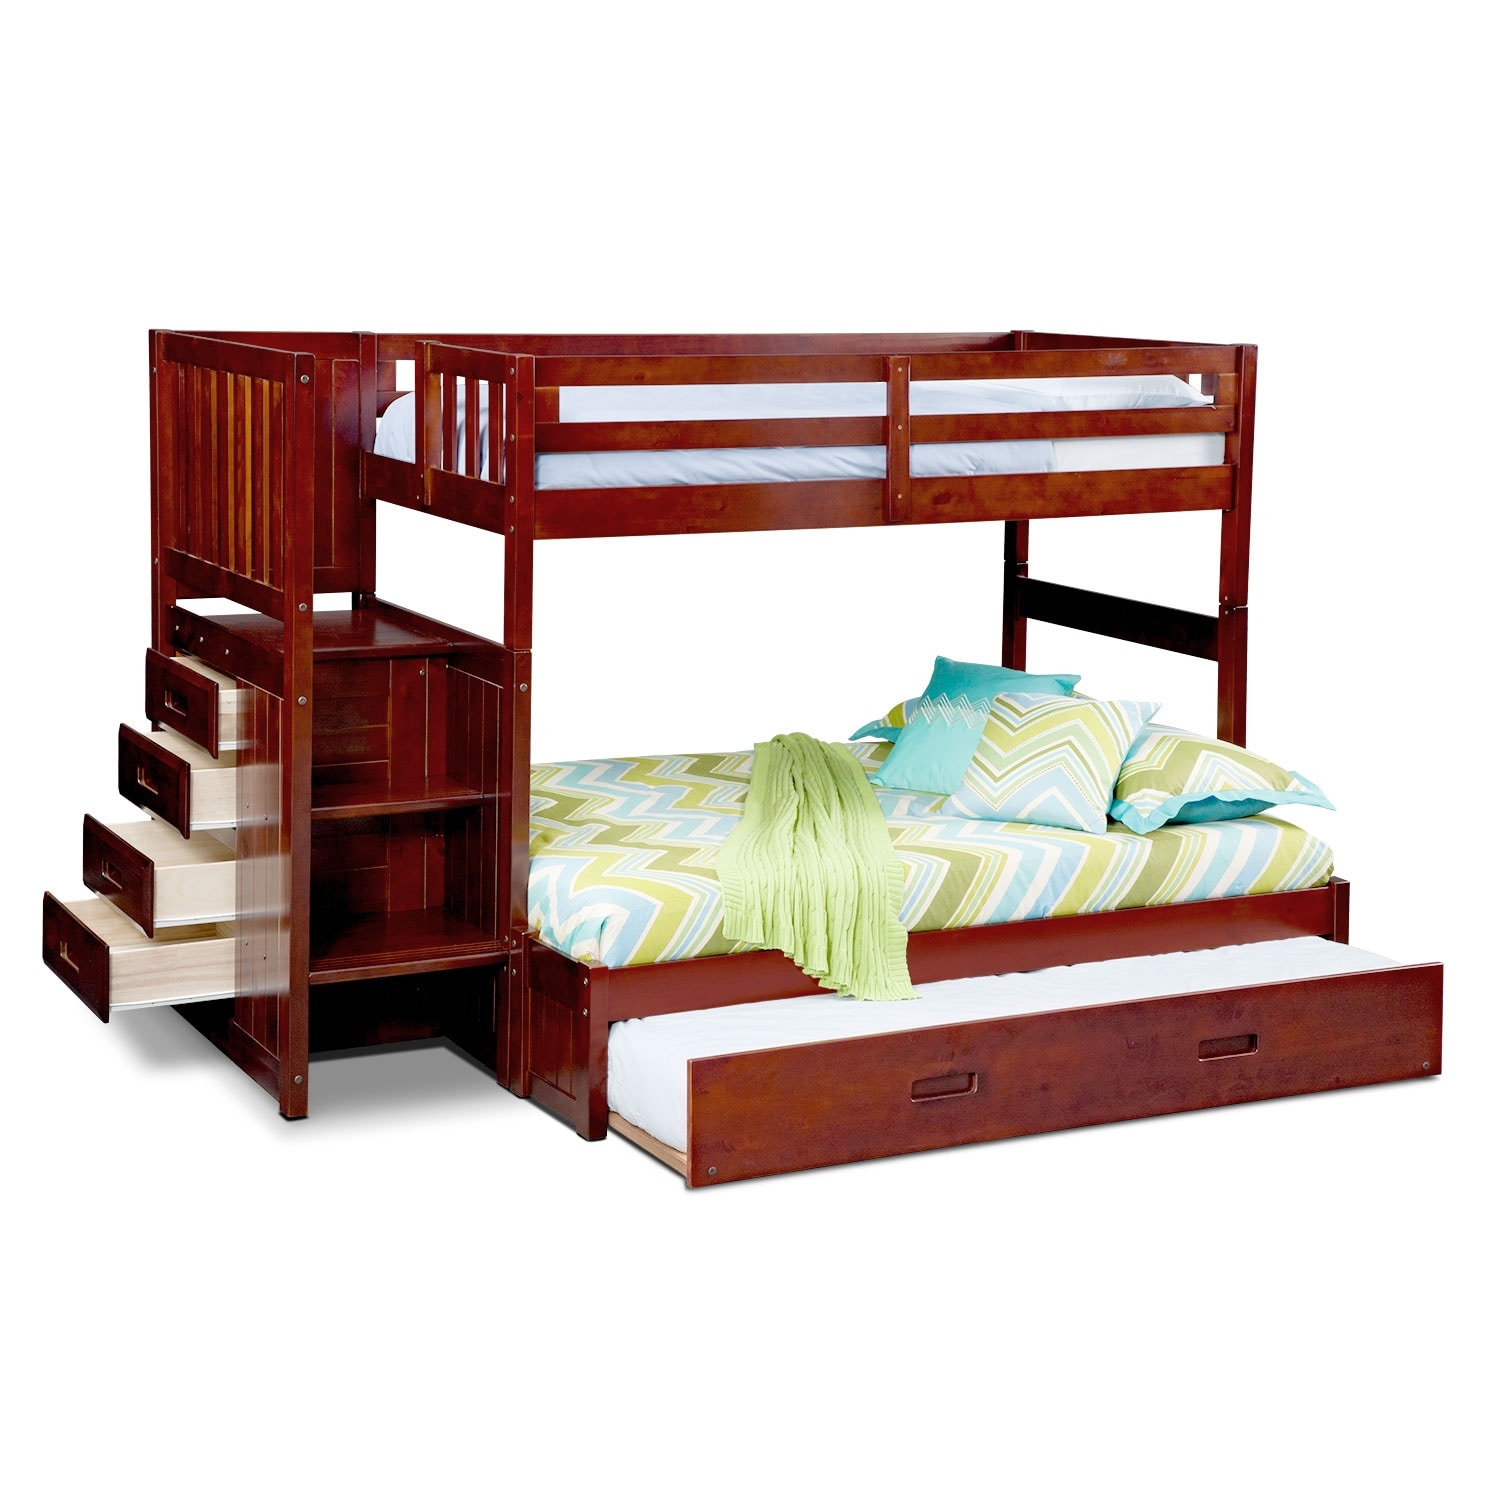 Bed Over Stair Box With Storage And Stairs: Ranger Twin Over Full Bunk Bed With Storage Stairs And